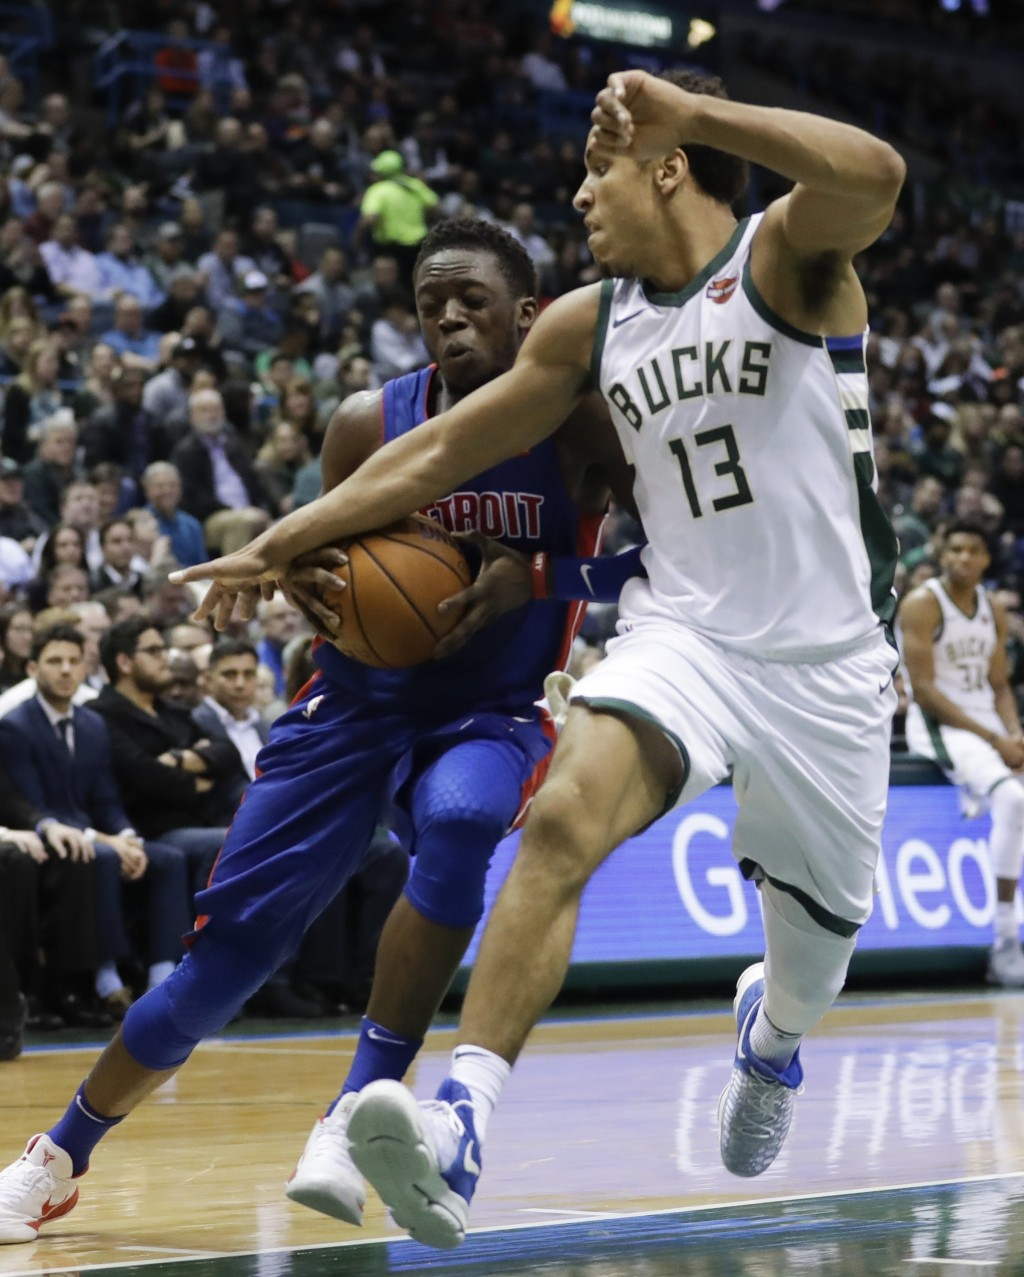 Detroit Pistons' Reggie Jackson tries to drive past Milwaukee Bucks' Malcolm Brogdon during the first half of an NBA basketball game Wednesday, Dec. 6